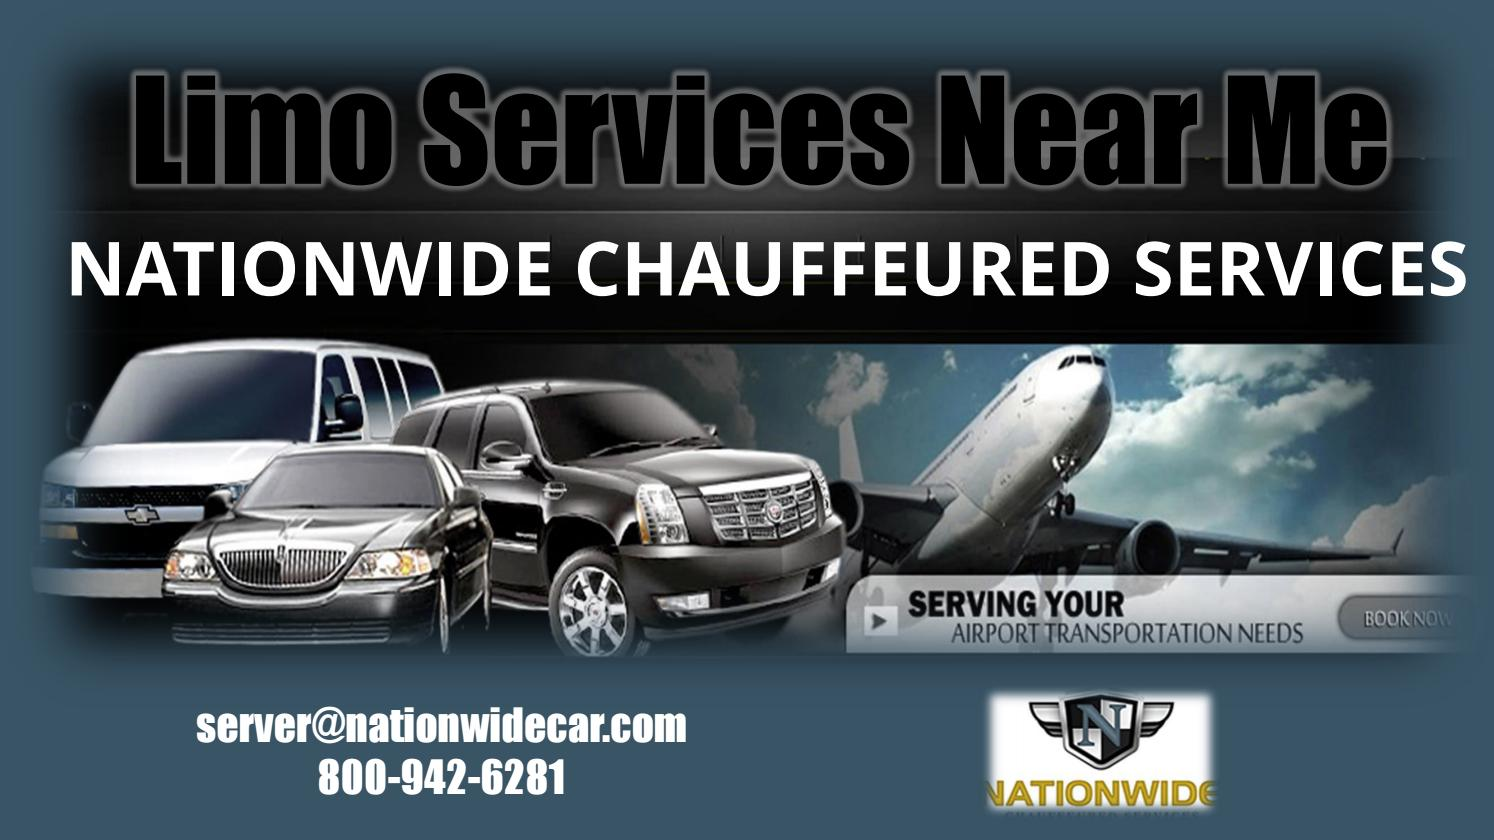 Limo service near me by Nationwidecar - issuu